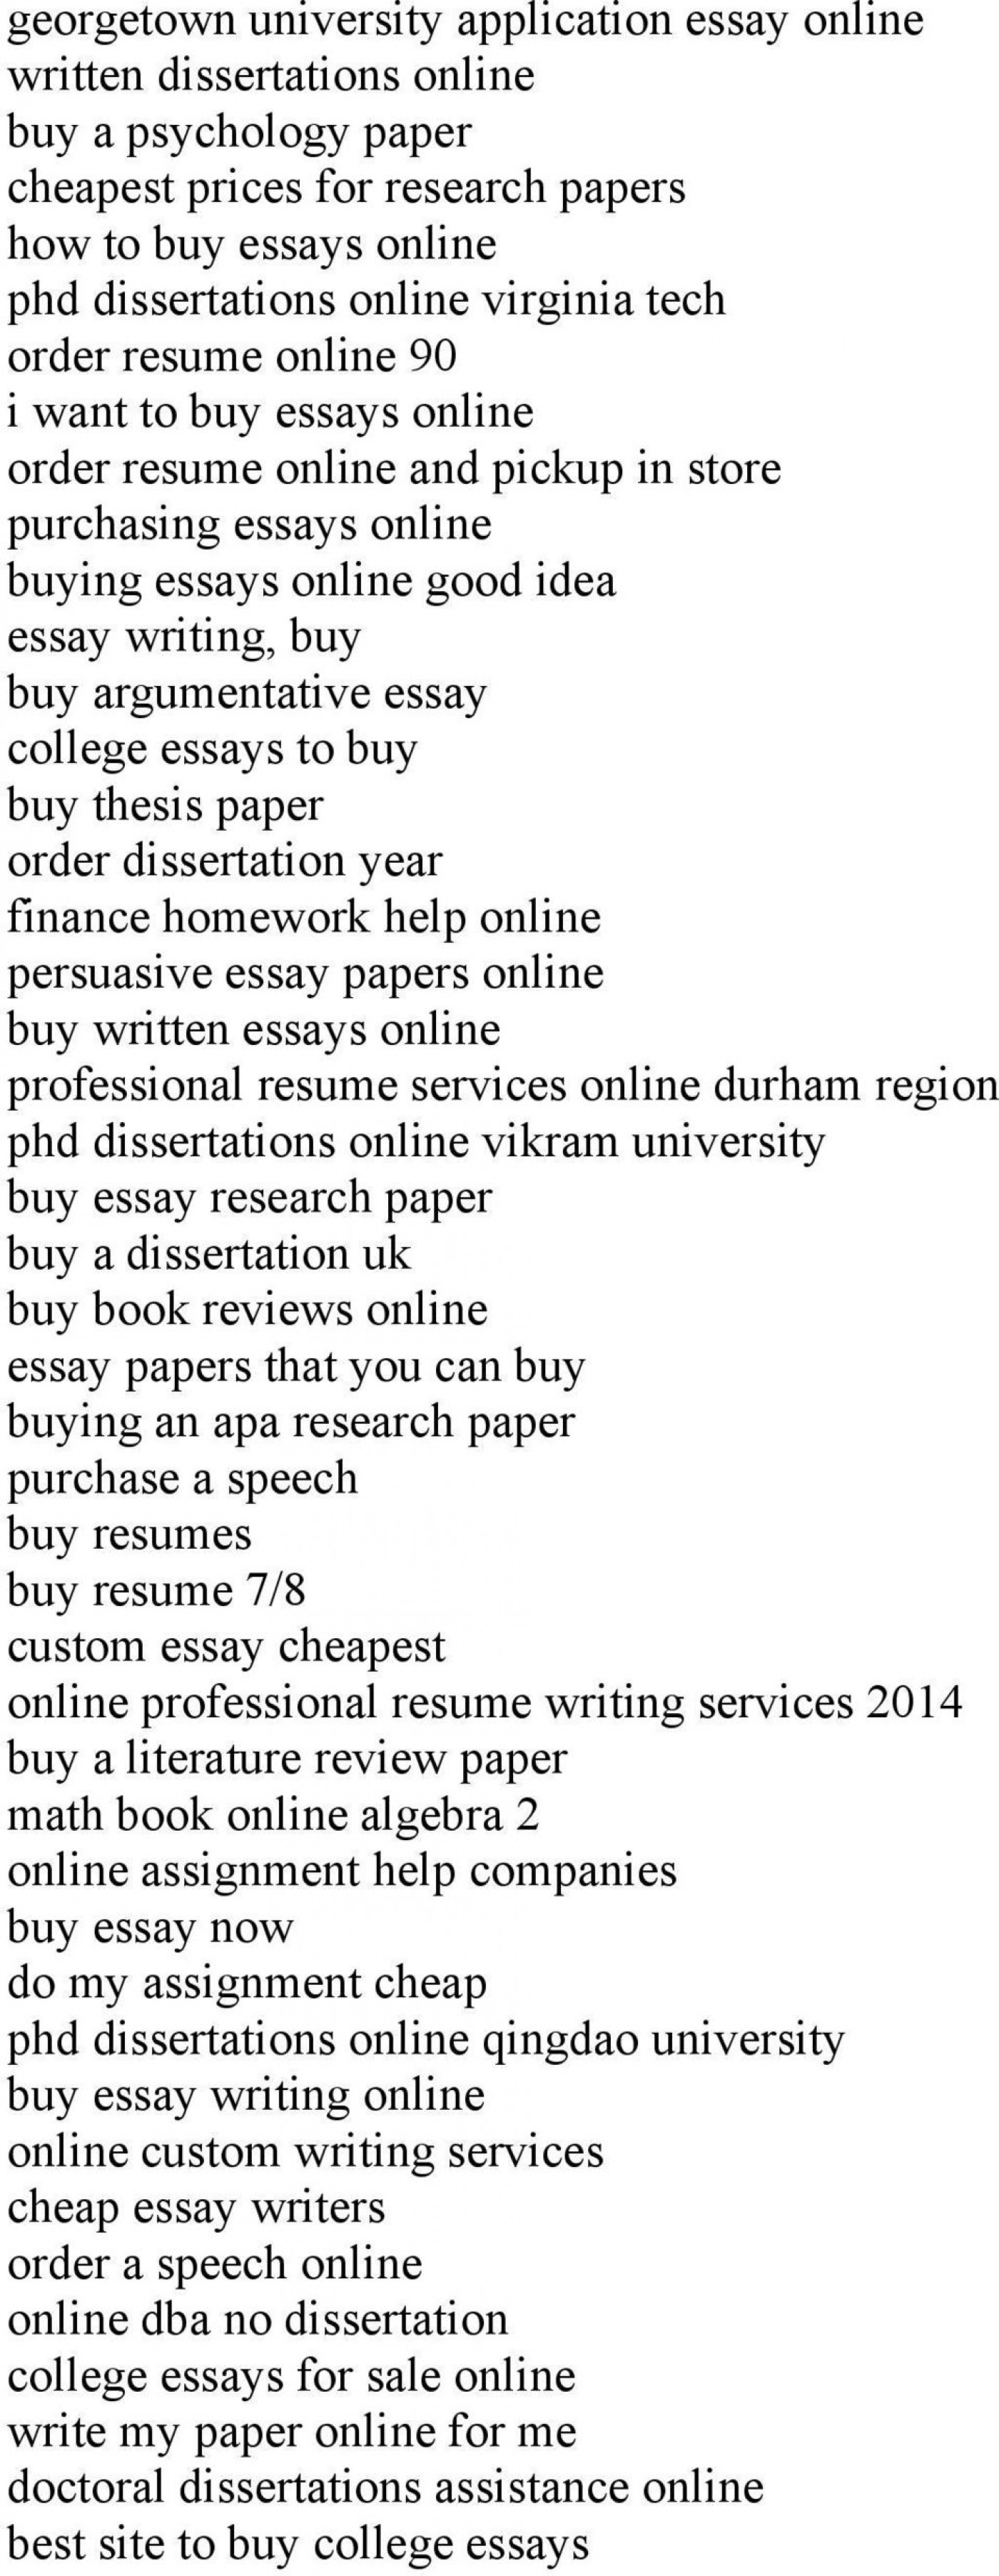 004 Research Paper Buying Page 4 Best A Behaviour Impulse Behavior Is Online Safe 1400